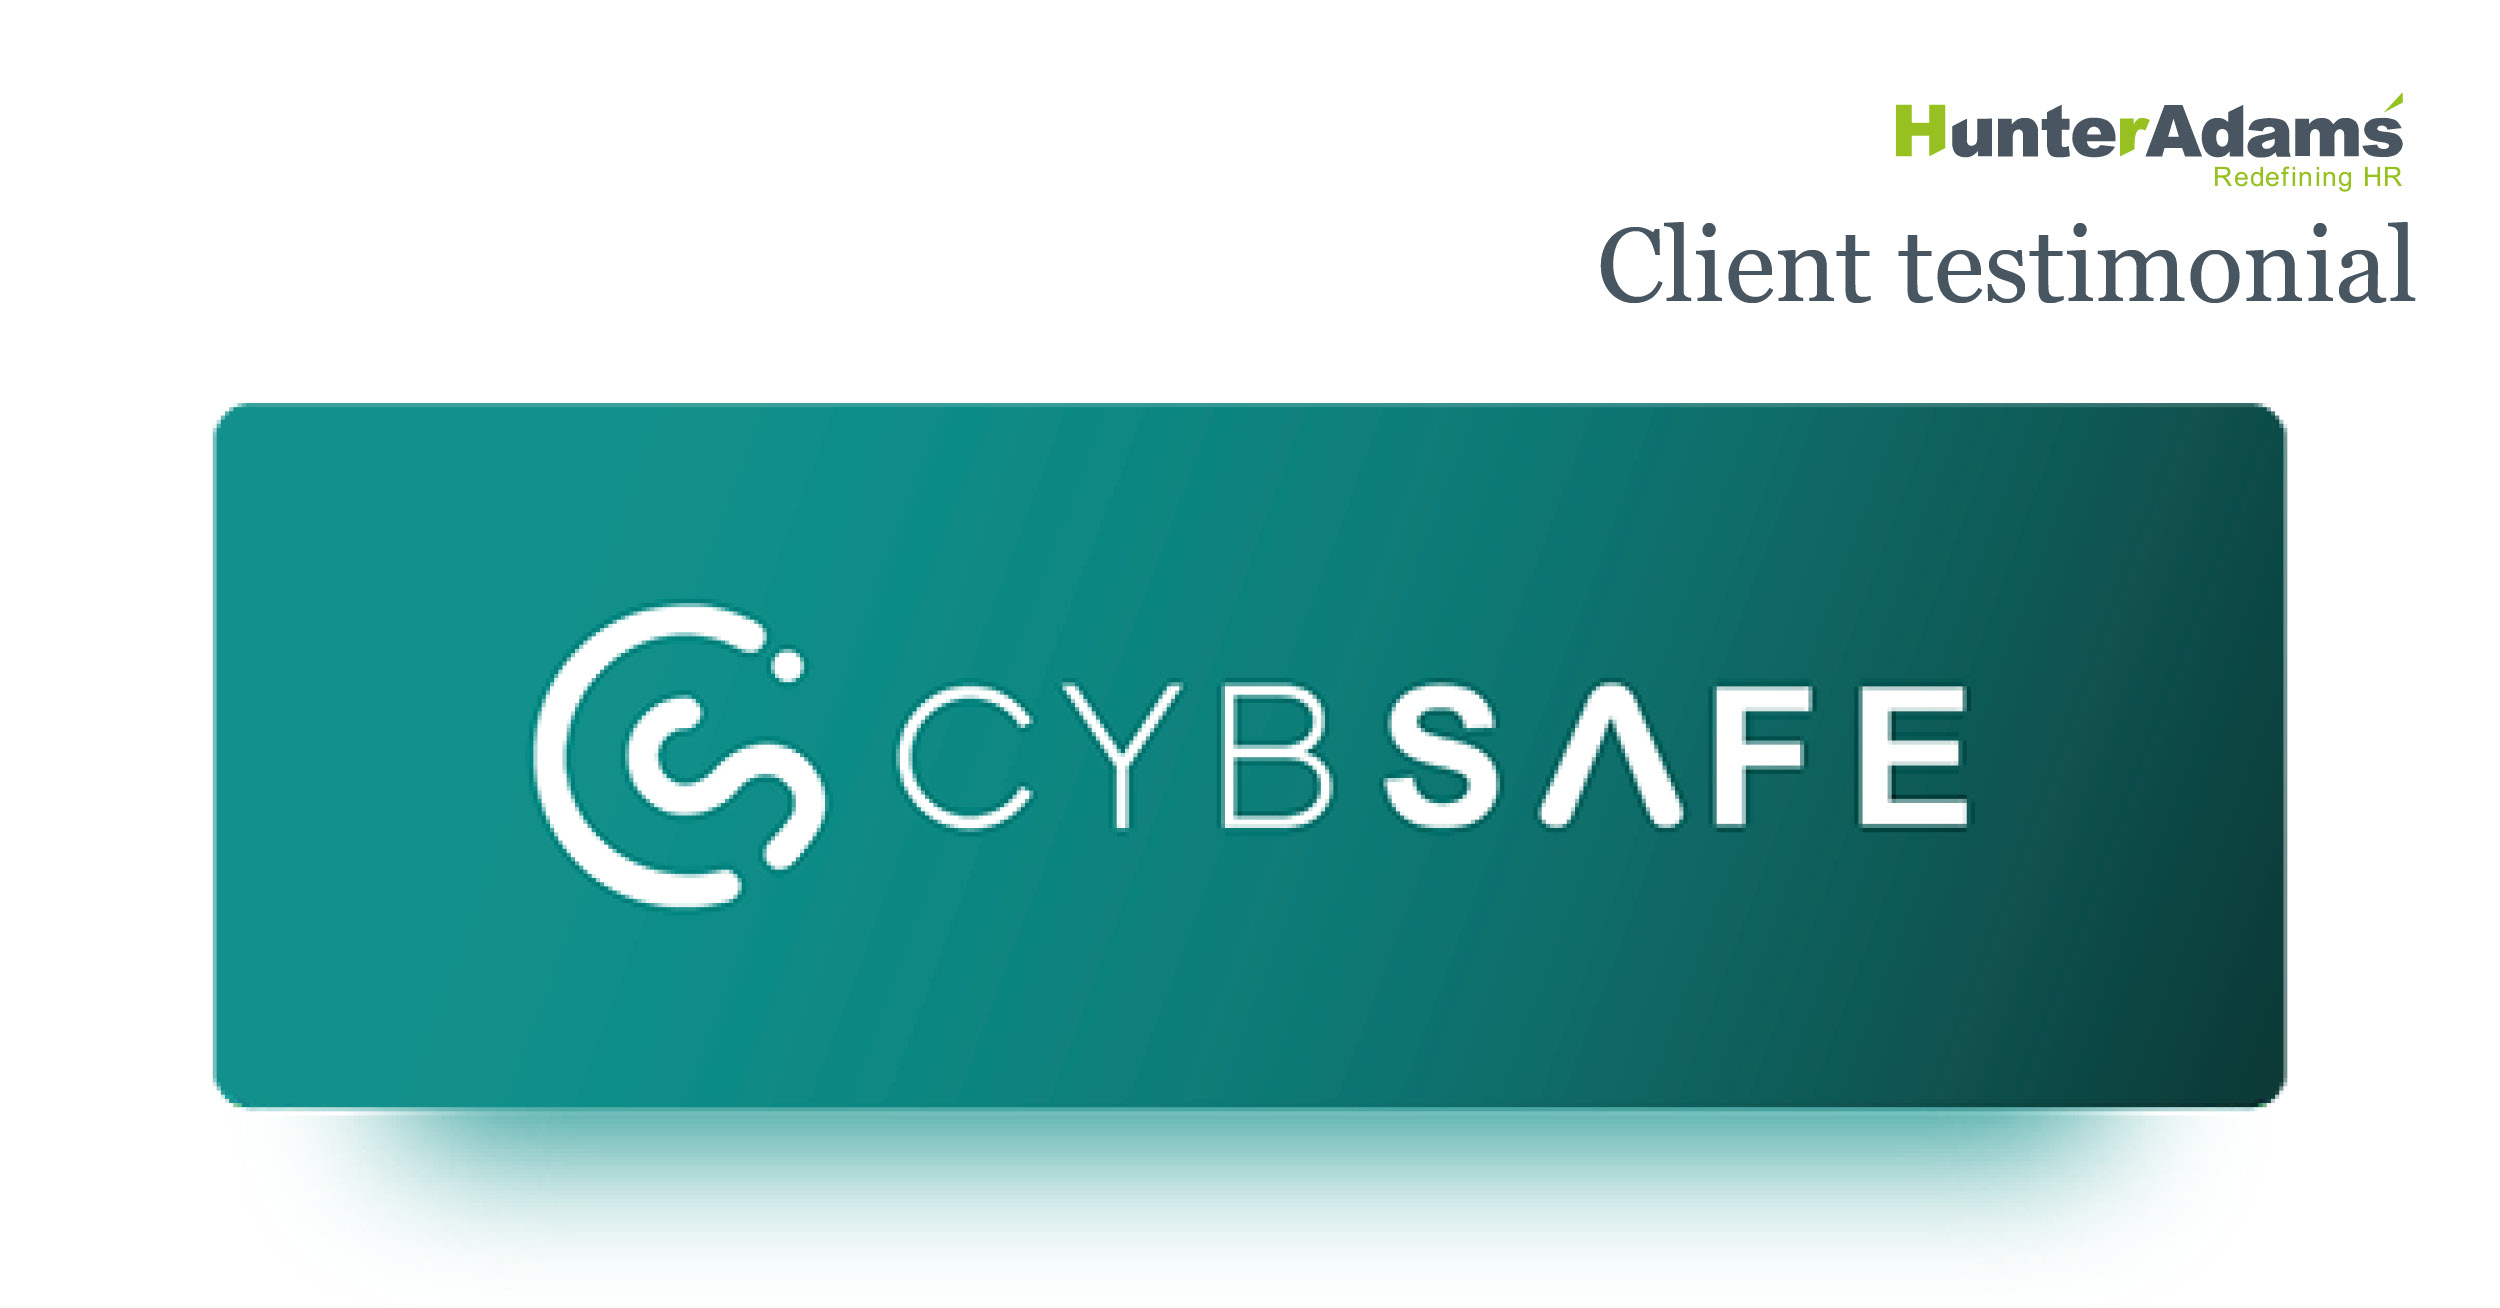 client testimonial from Cybsafe